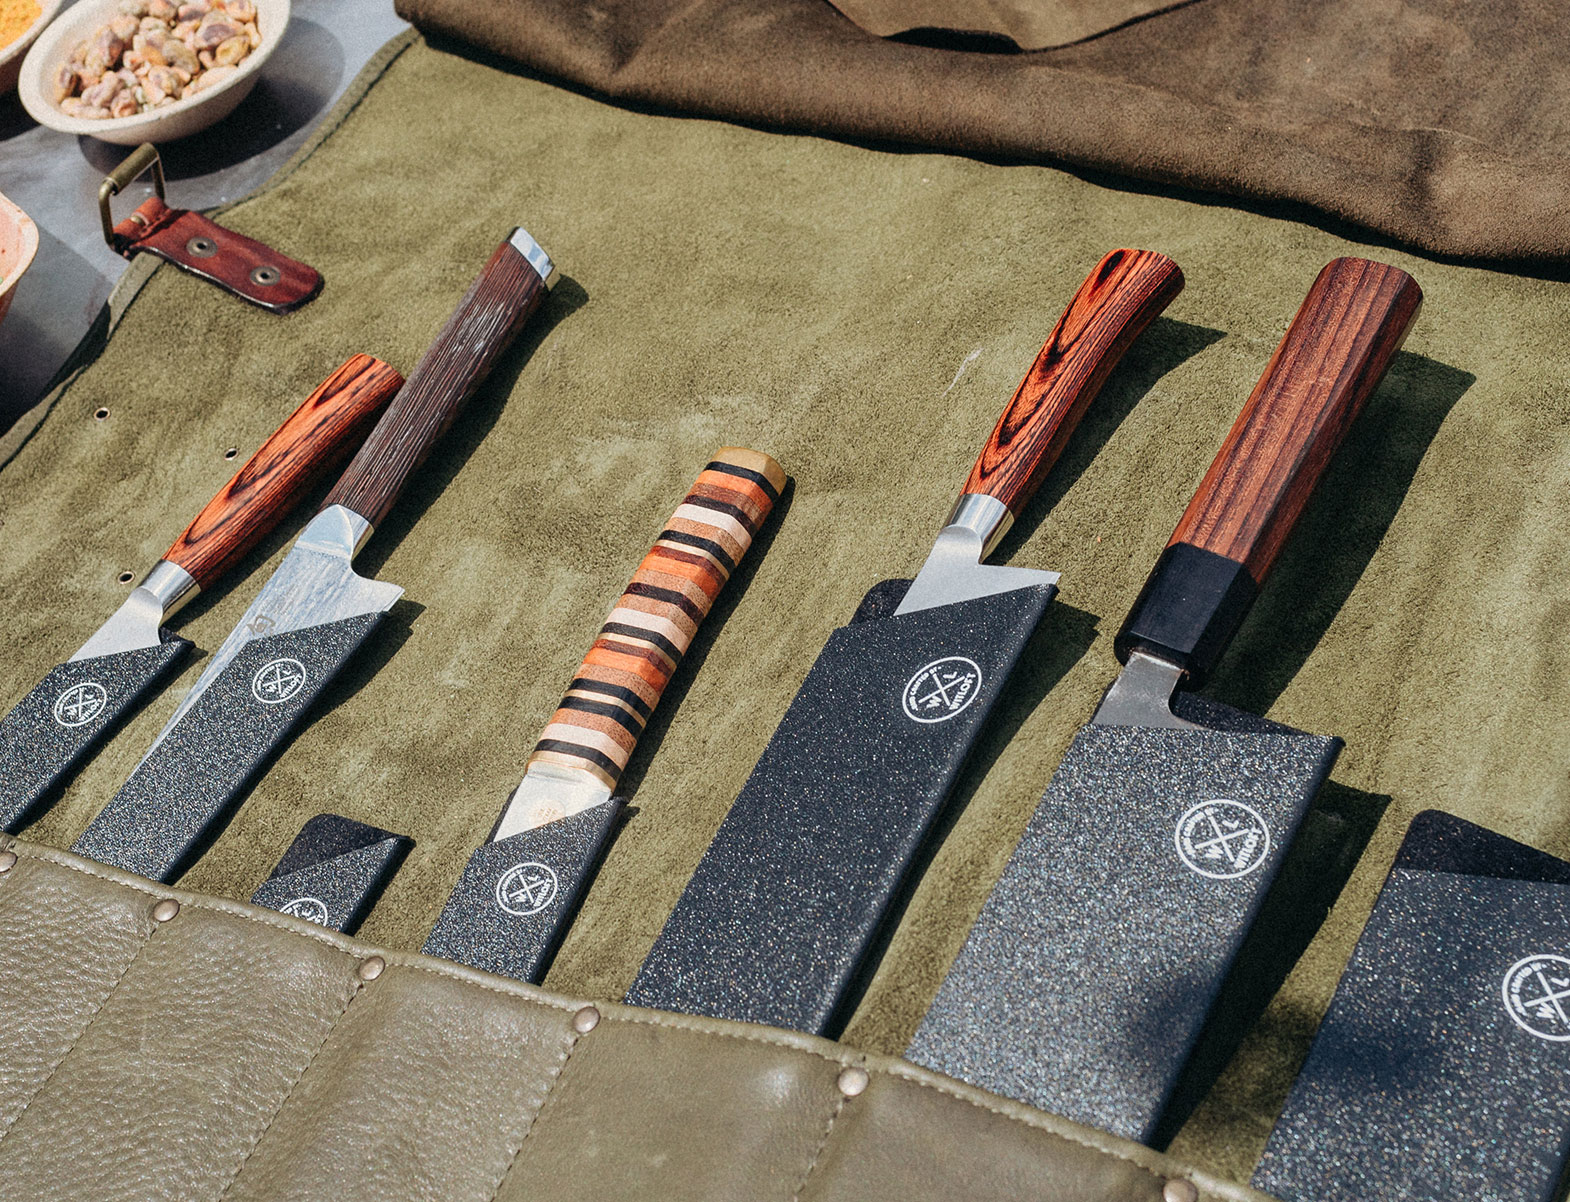 WITLOFT Cooking in Brooklyn Story Knife protectors keeping the blade of the knife sharp